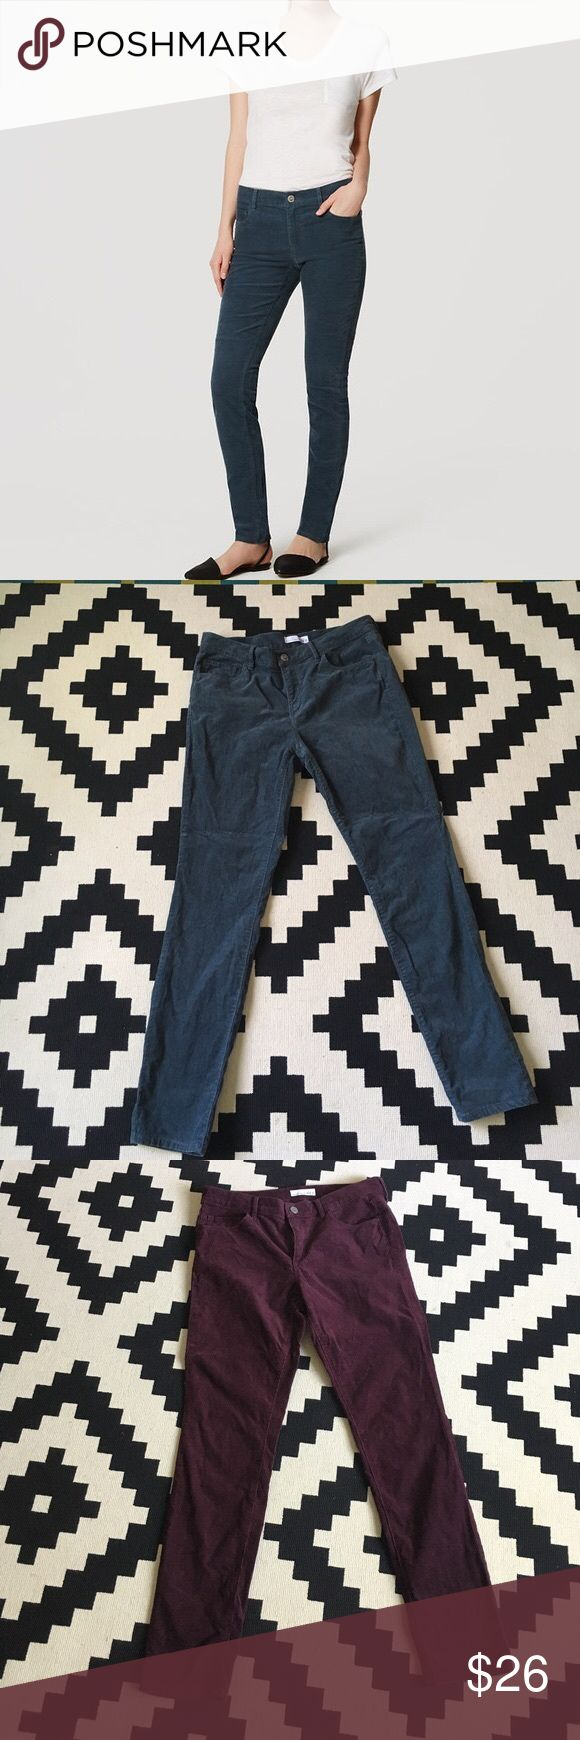 """2 pairs LOFT Modern Skinny cords teal + plum sz 8 Two pairs gently worn LOFT Modern Skinny Corduroys, worn this winter season only (price includes both pairs). Moving to a hot, tropical place for a year and so will not be needing these ;). Both are Size 8 and fit like other LOFT Modern Skinny pants. One is described as """"ripened plum,"""" while the other is described as """"deep pacific teal."""" 98% cotton, 2% elastane. Machine wash. LOFT Pants Skinny"""